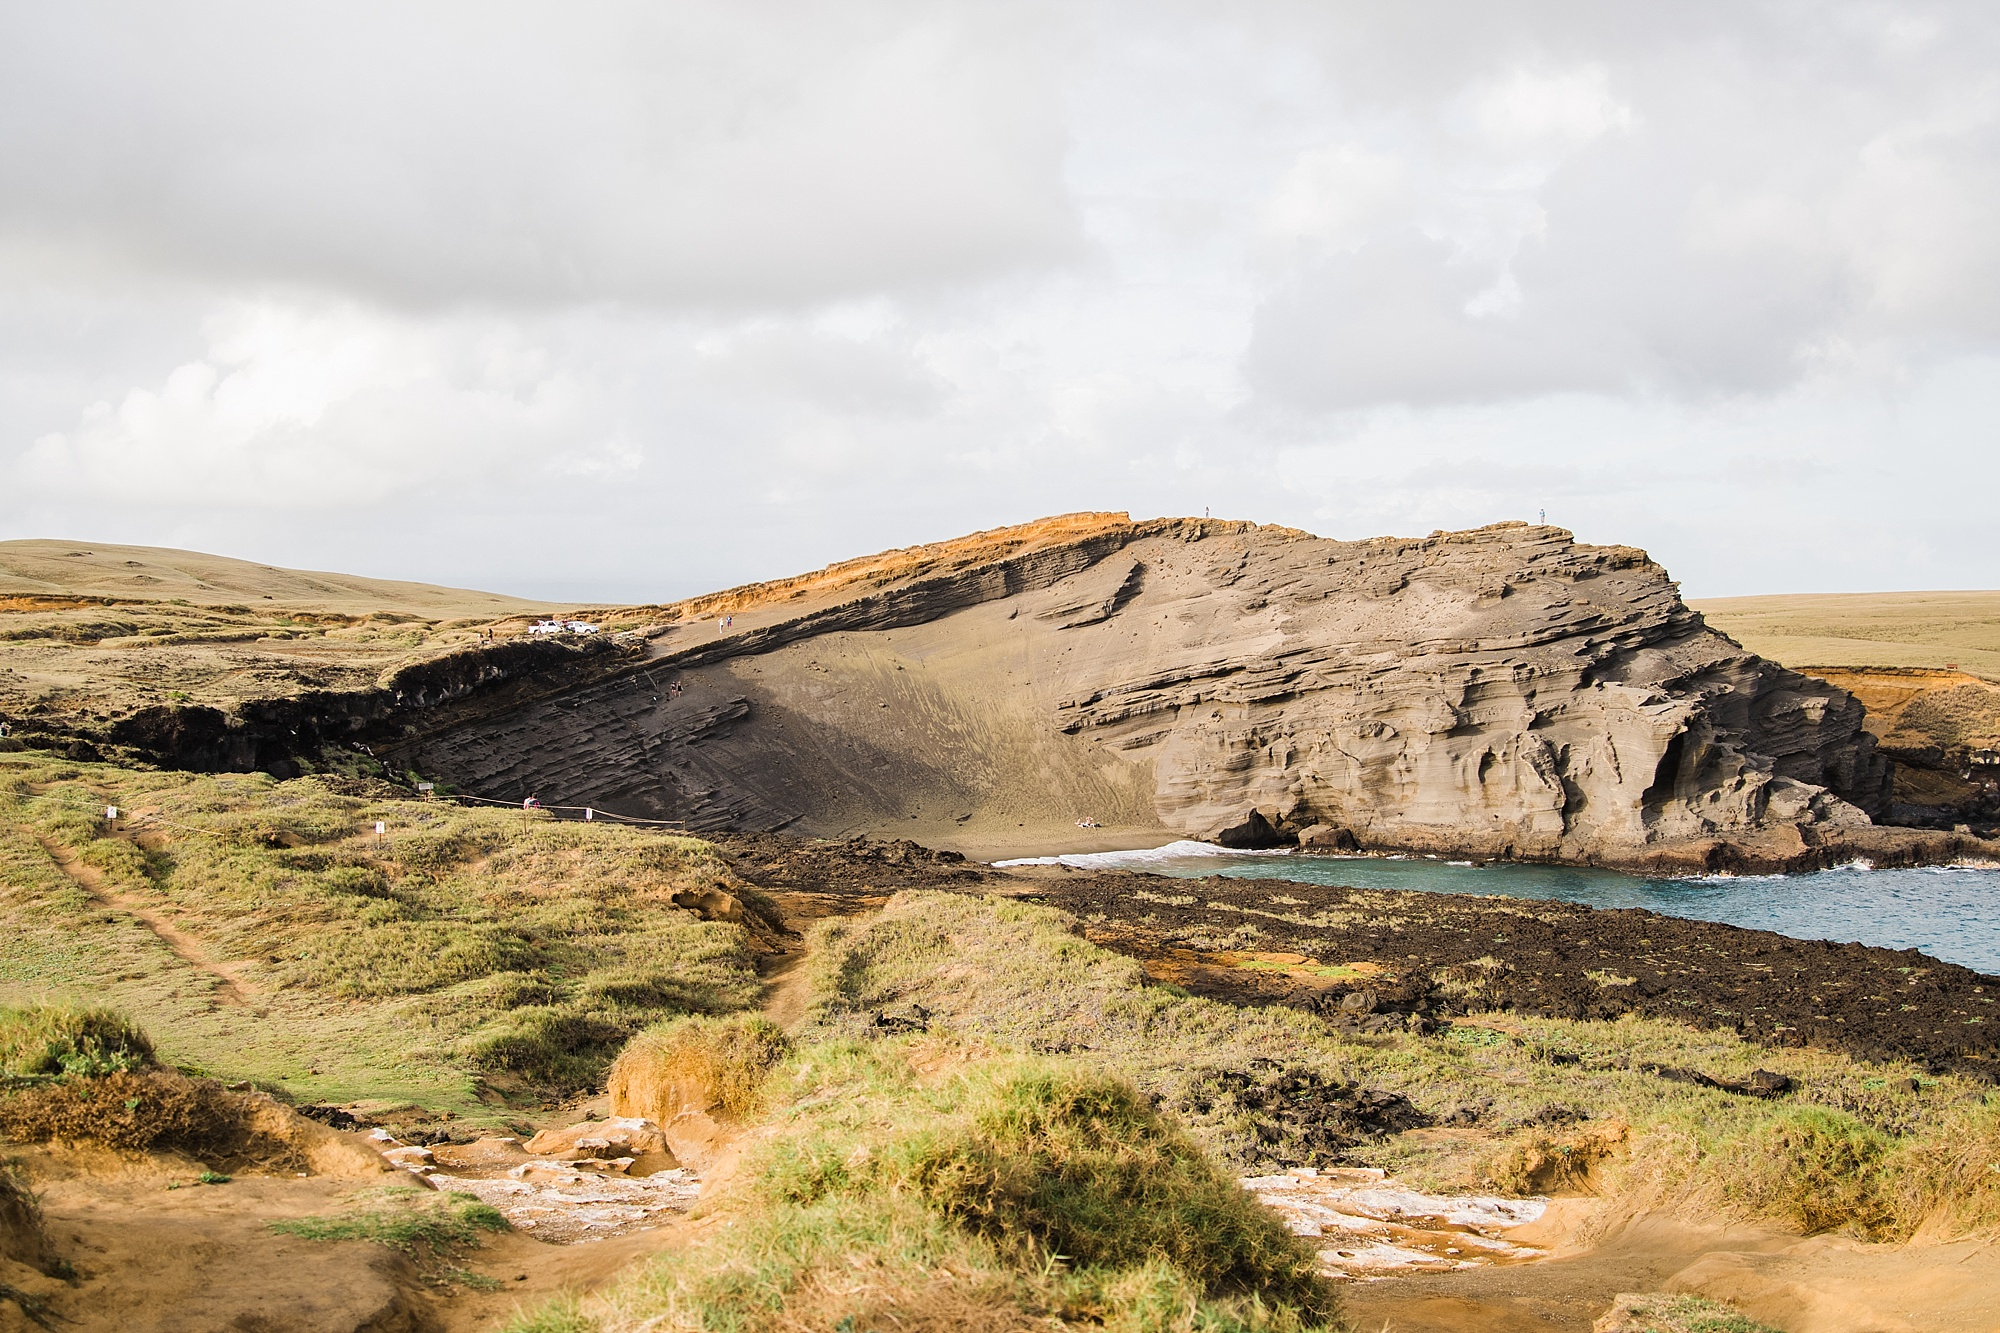 Panoramic View of Papakolea Green Sand Beach on the Big Island of Hawaii, taken by Devon Young of Forthright Photo